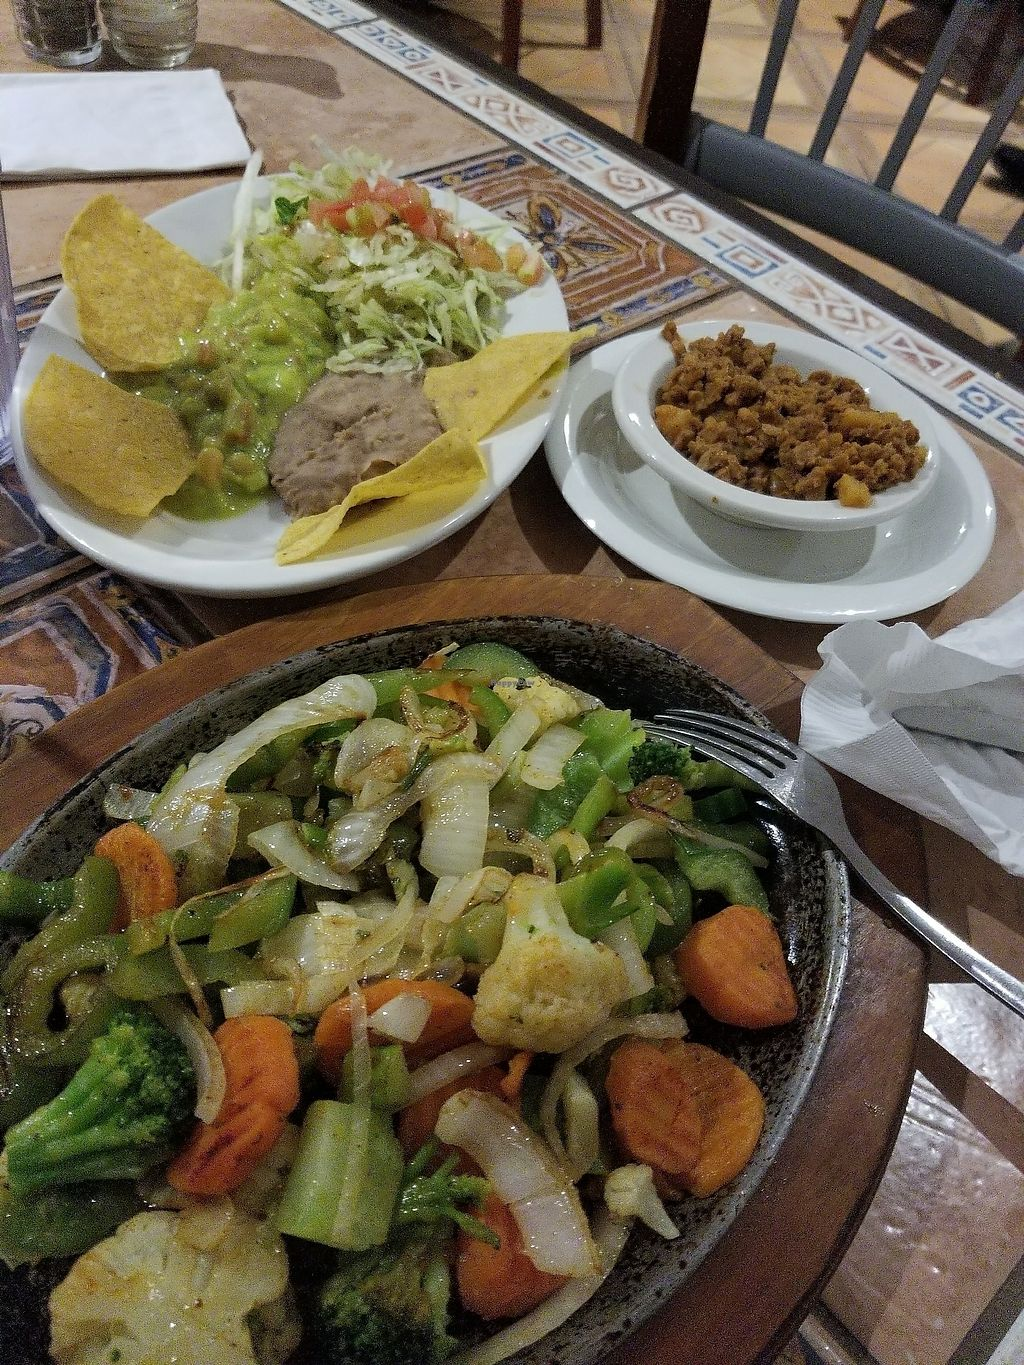 """Photo of Lolita's Mexican Restaurant  by <a href=""""/members/profile/EmmaKingdom"""">EmmaKingdom</a> <br/>Soy Meat Vegetable Fajitas <br/> August 2, 2017  - <a href='/contact/abuse/image/20787/287841'>Report</a>"""